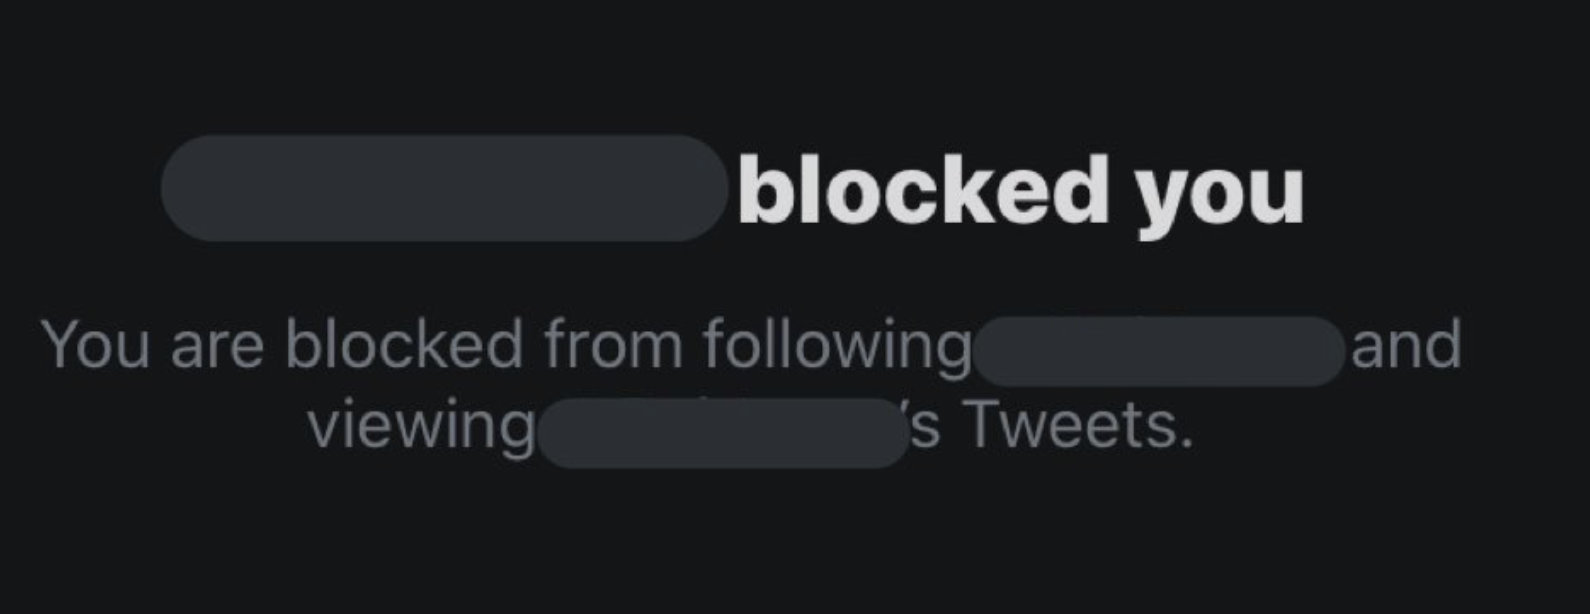 And then they get blocked